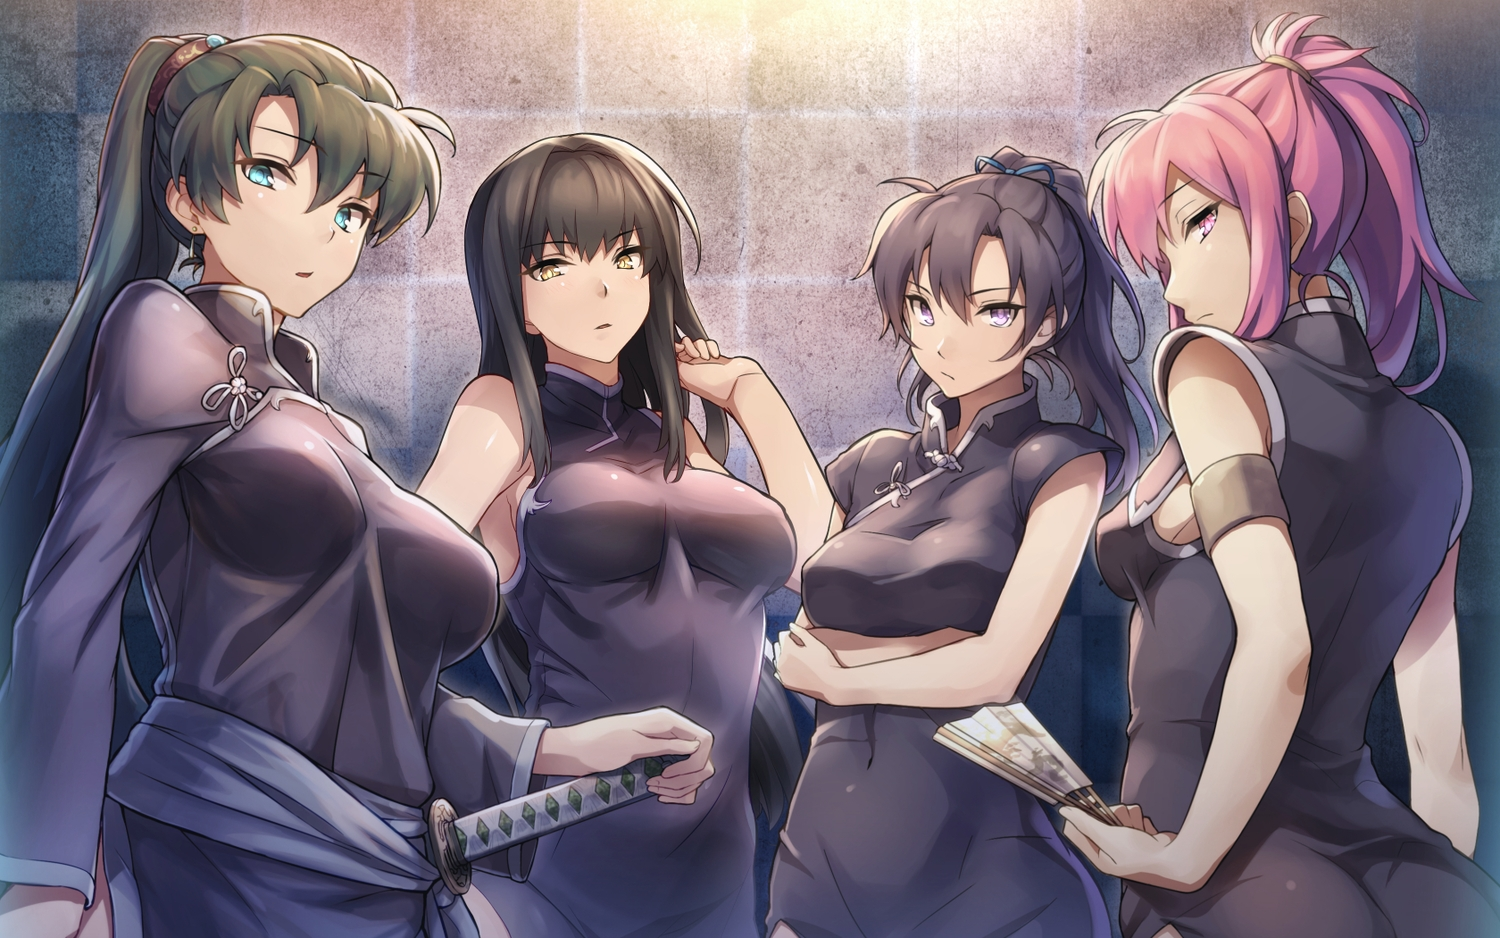 black_hair breasts brown_hair fan fire_emblem group karla_(fire_emblem) katana long_hair lyndis_(fire_emblem) marica_(fire_emblem) pink_hair ponytail ribbons shinon_(tokage_shuryou) sword tagme_(character) weapon